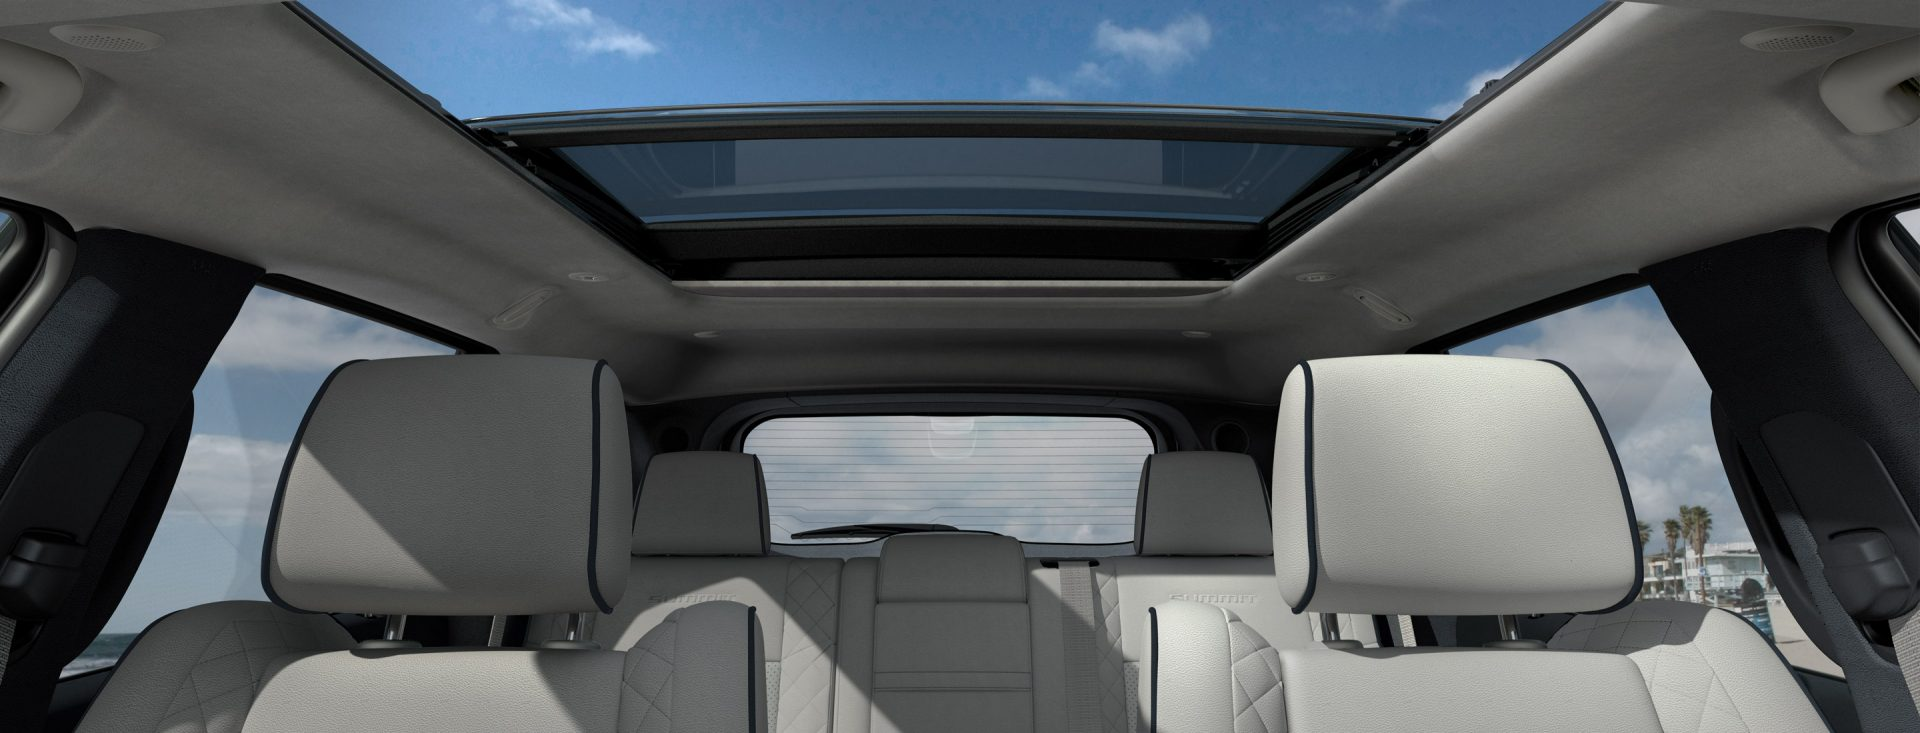 jeep grand cherokee interior features. Black Bedroom Furniture Sets. Home Design Ideas